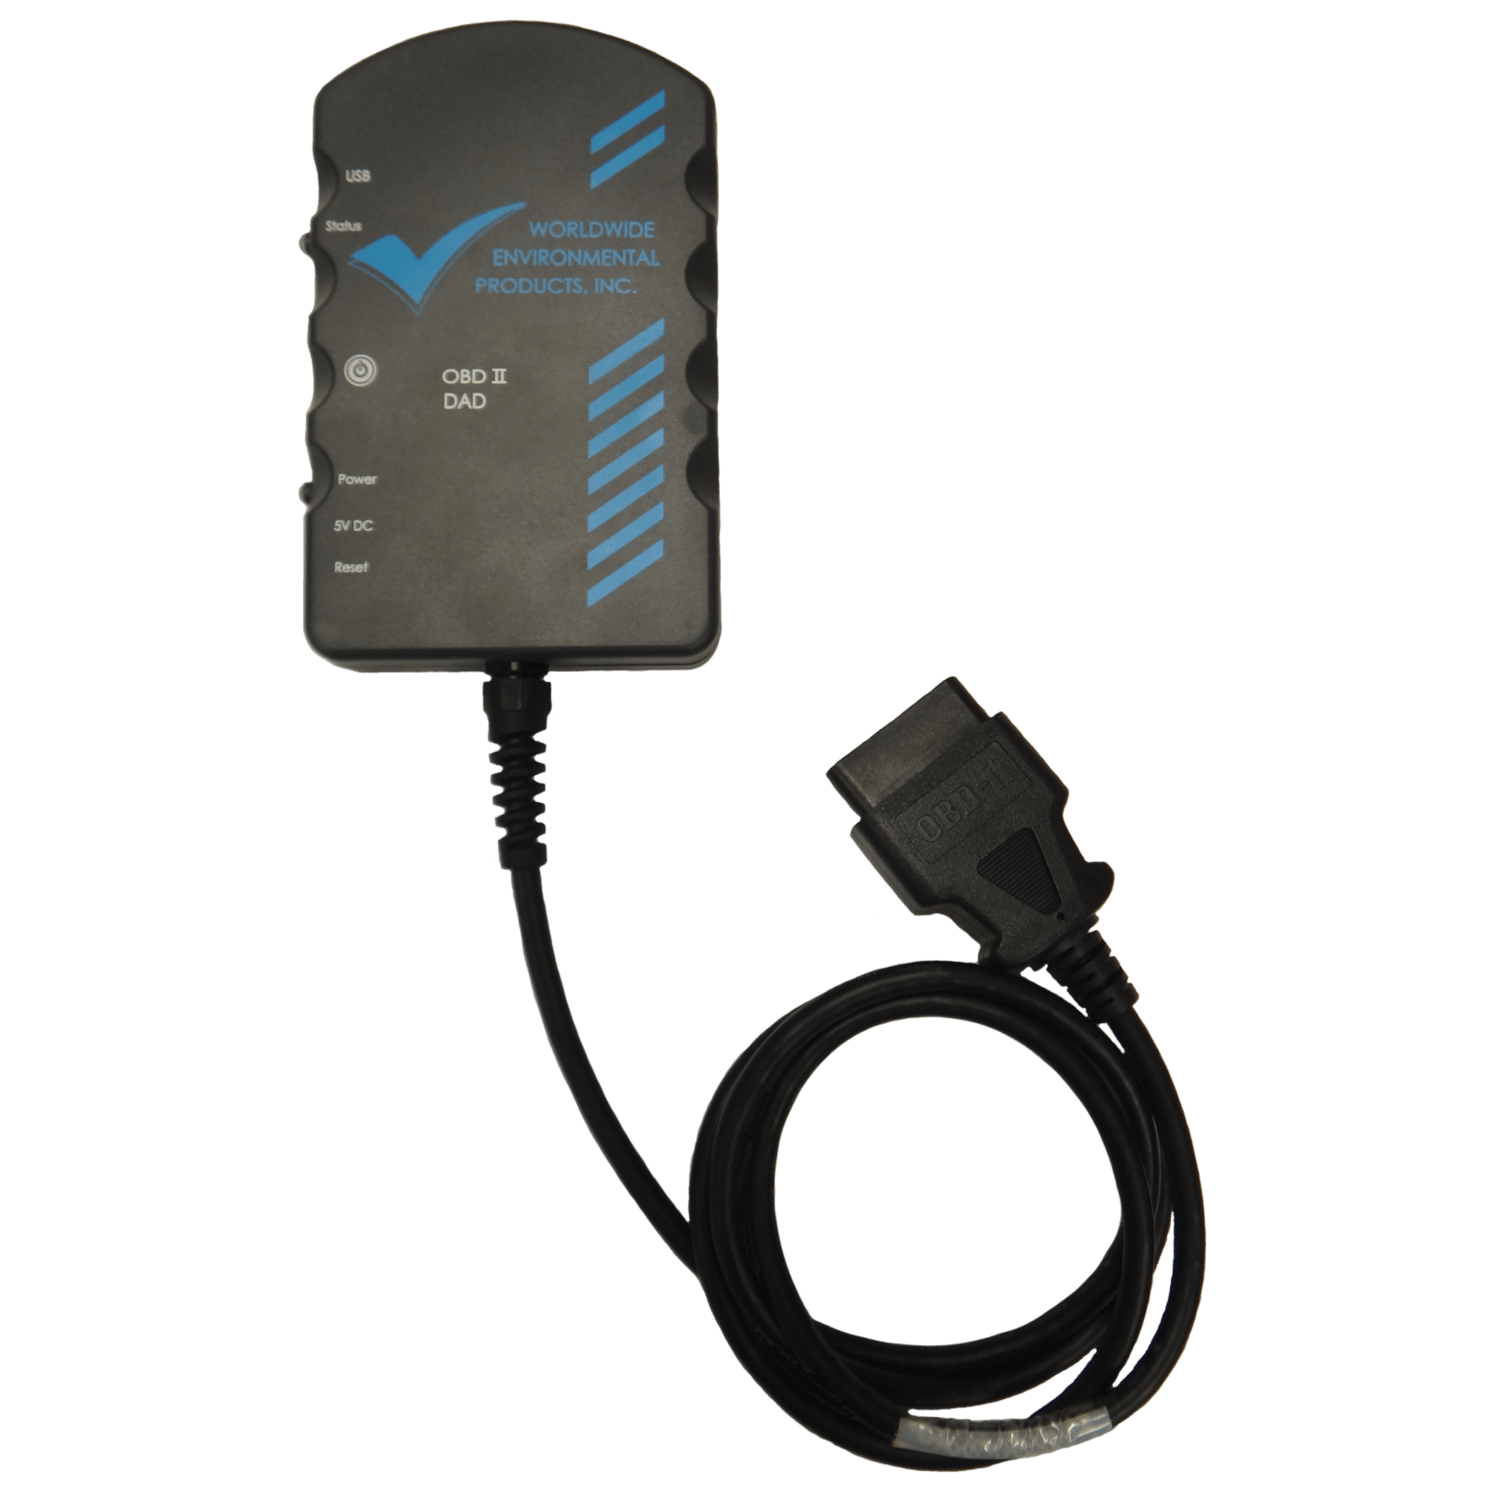 Worldwide OBDII Data Acquisition Device (DAD)